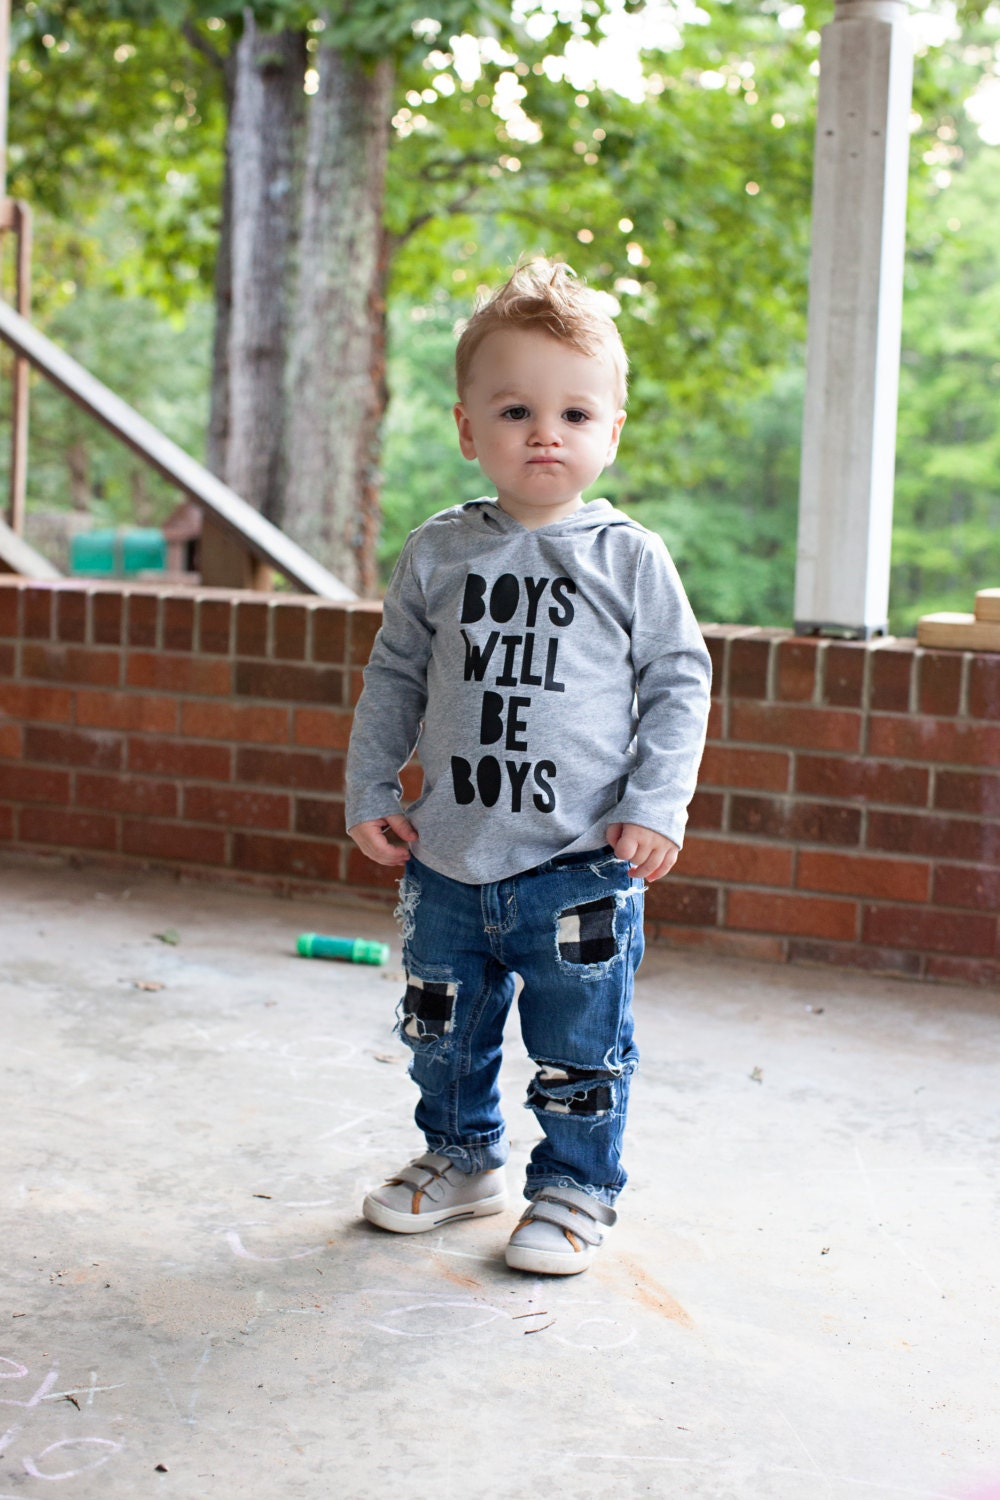 Trendy baby boy clothes Hipster tee Boys will be boys